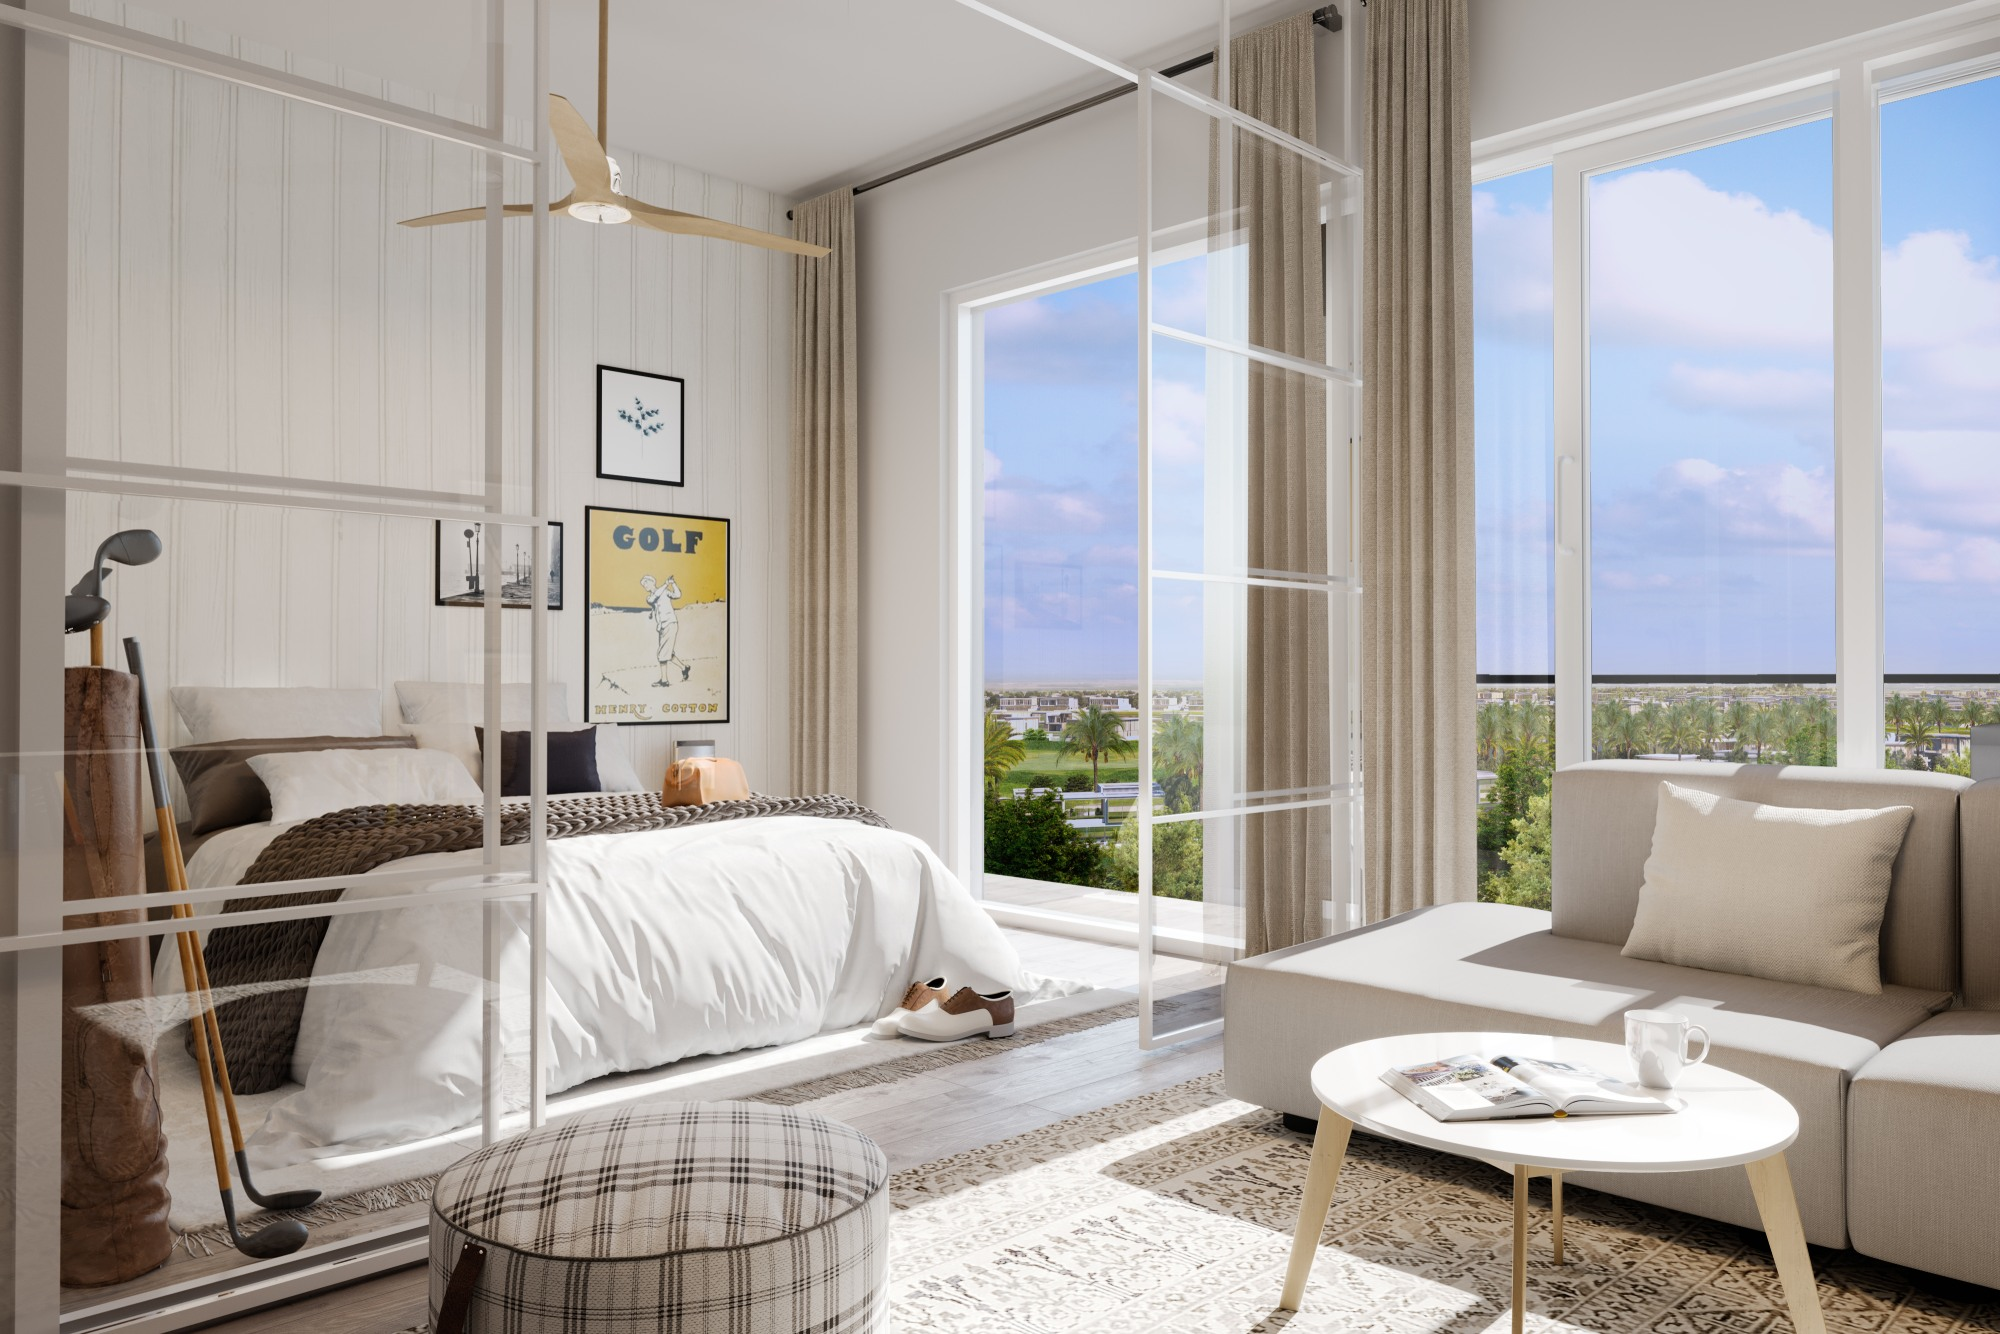 Luxury 1 bed | Stunning Views | Great Investment